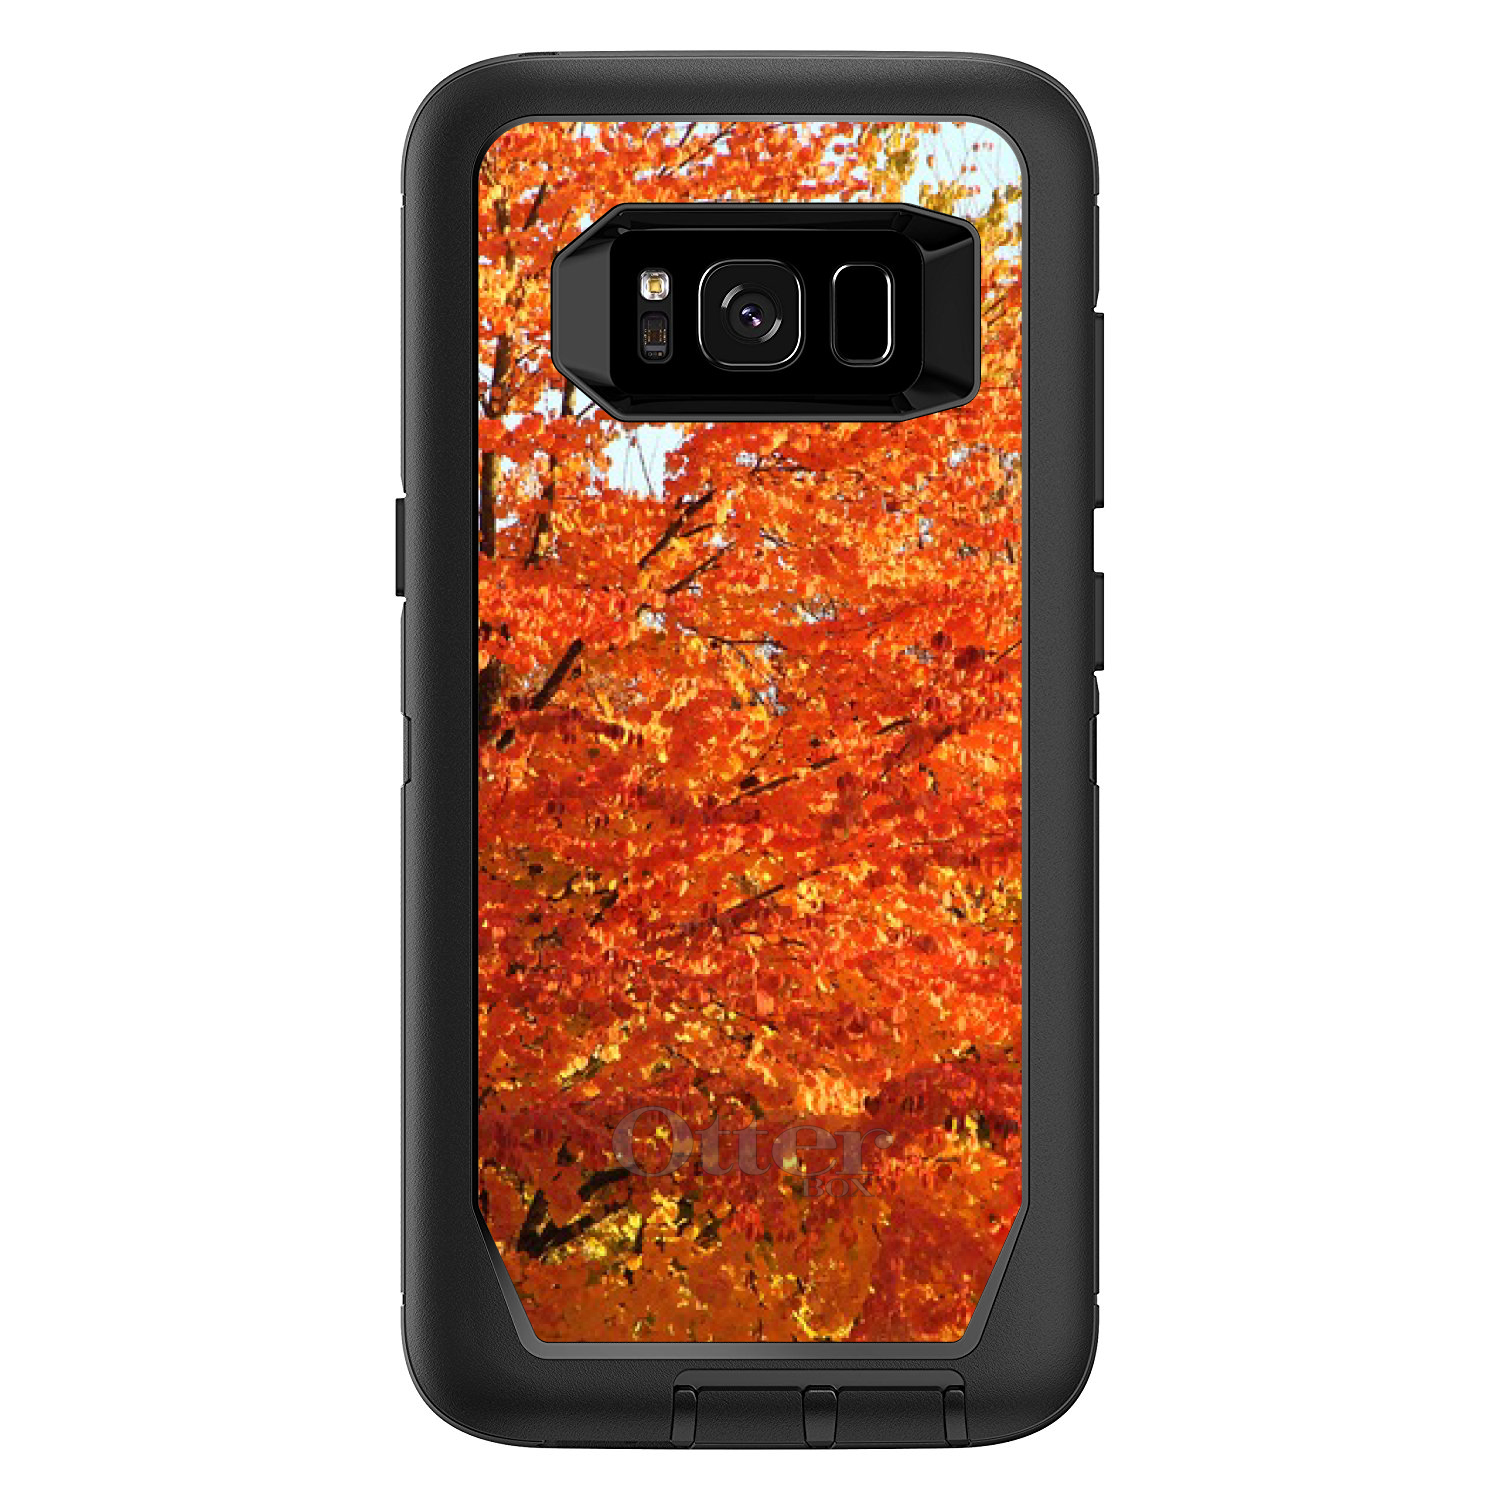 "DistinctInk™ Custom Black OtterBox Defender Series Case for Samsung Galaxy S8 (5.8"" Screen) - Orange Autumn Leaves"